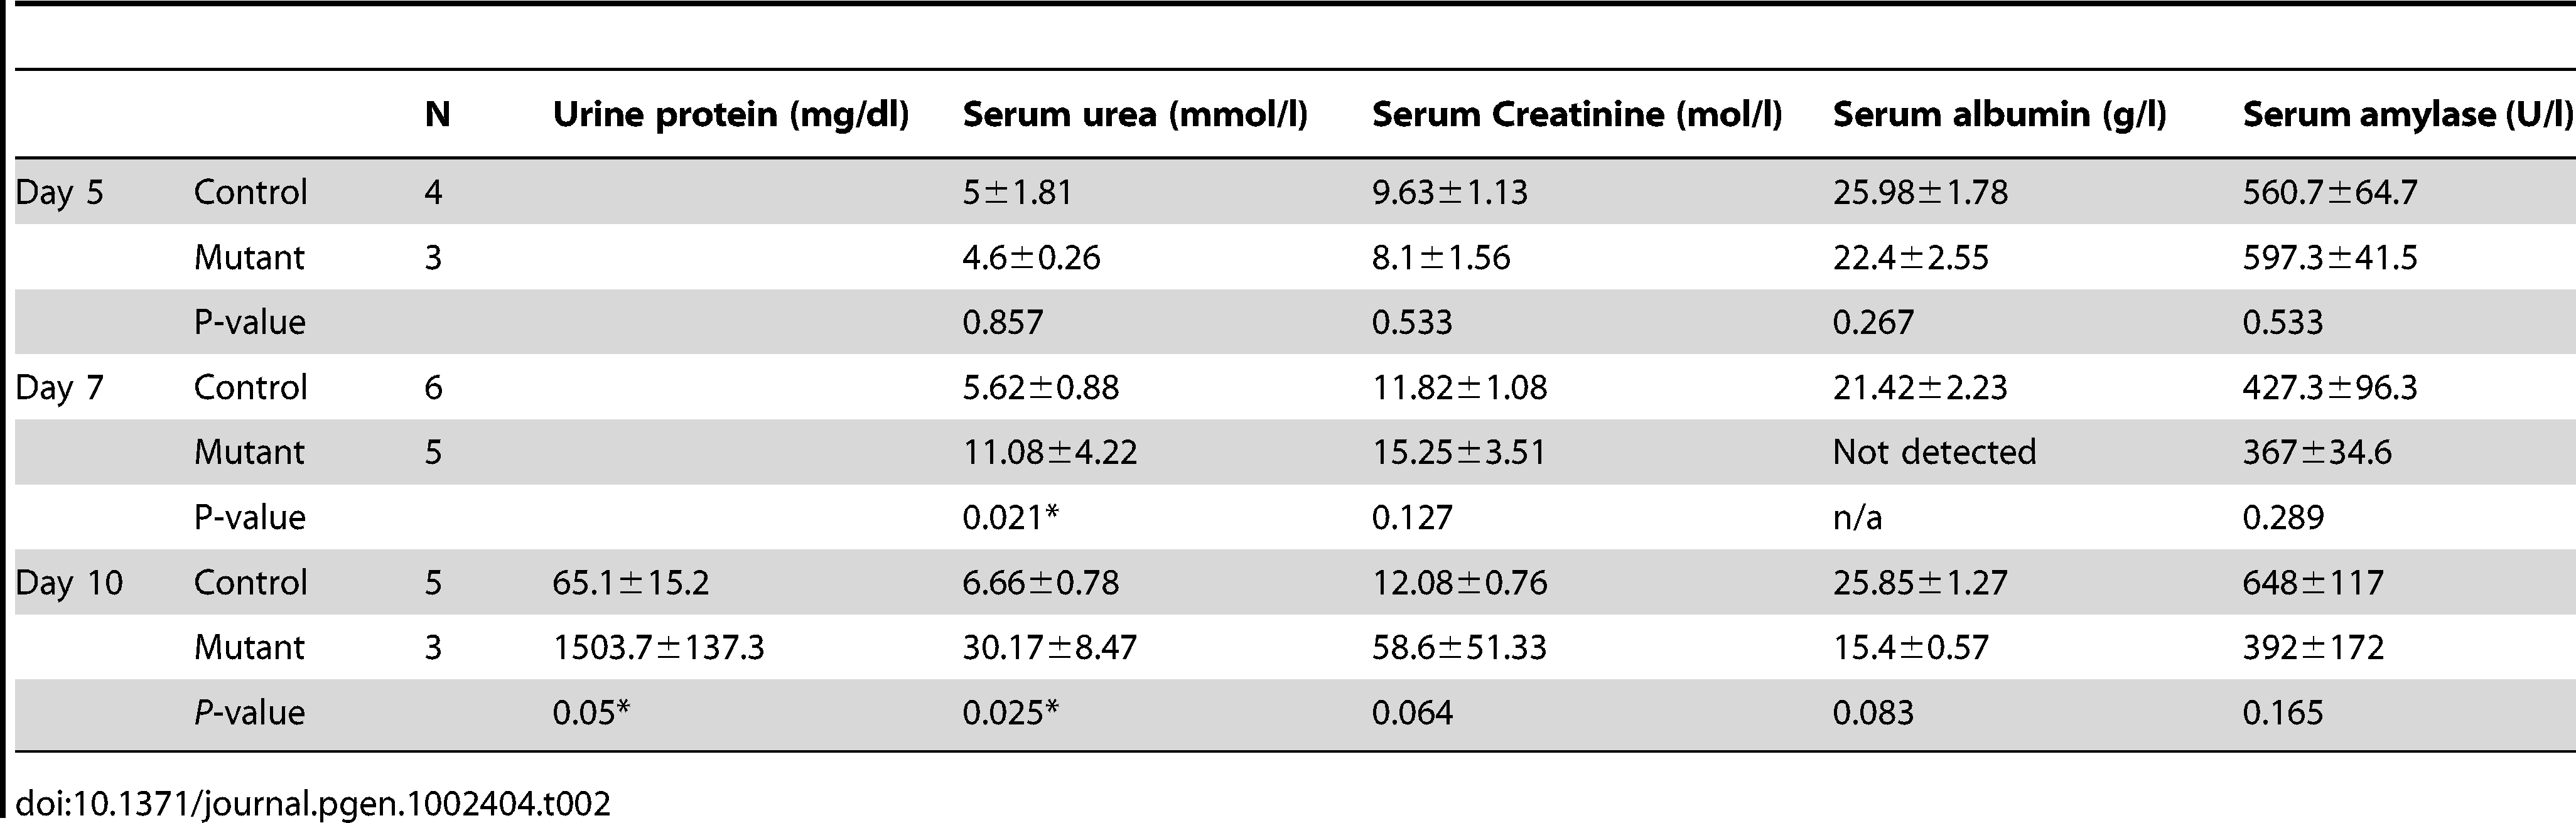 Urine and serum biochemistry analysis of adult mice deleted for Wt1.